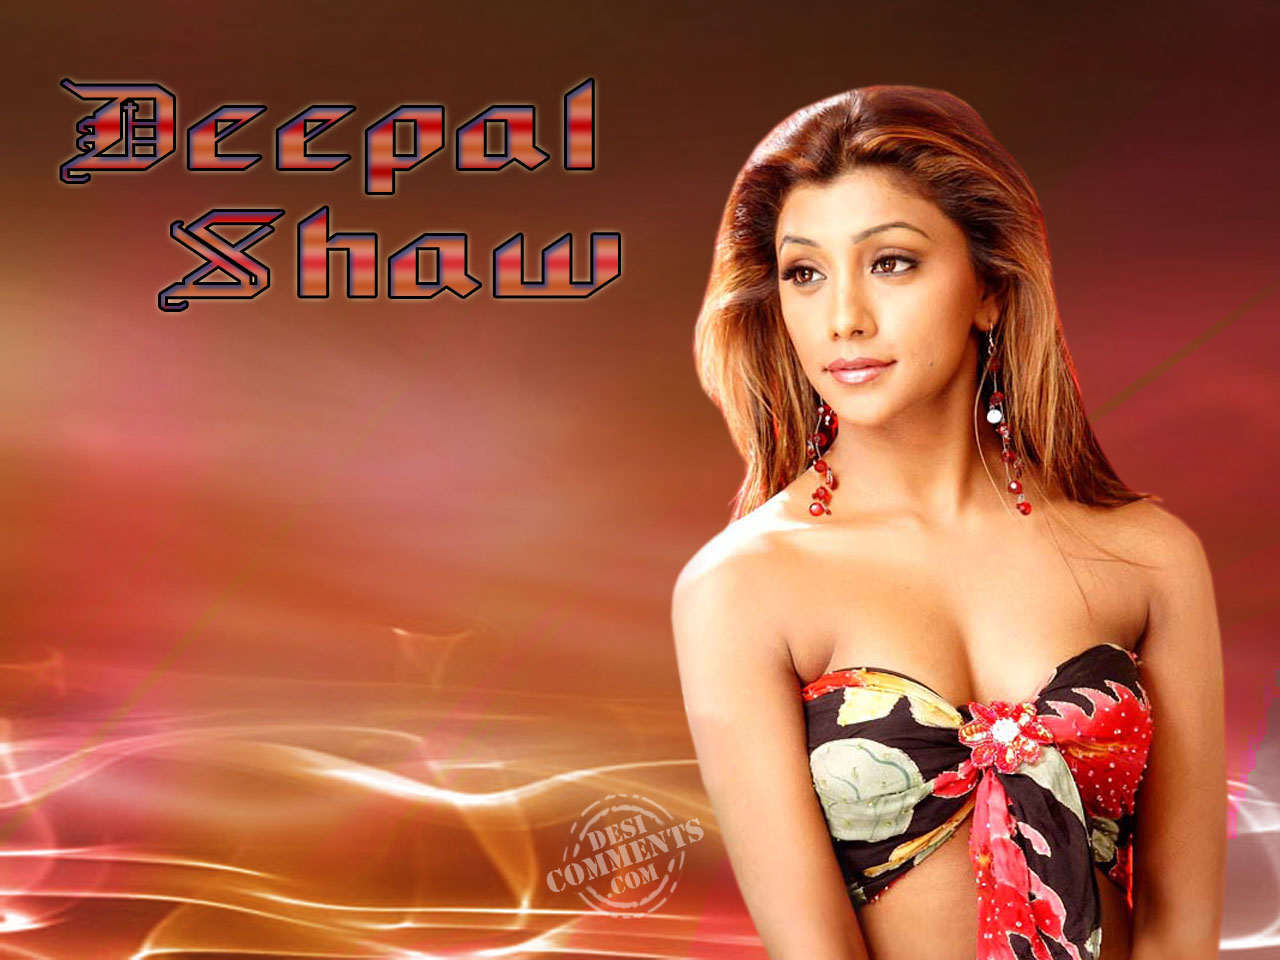 - Deepal-Shaw-Wallpapers-03